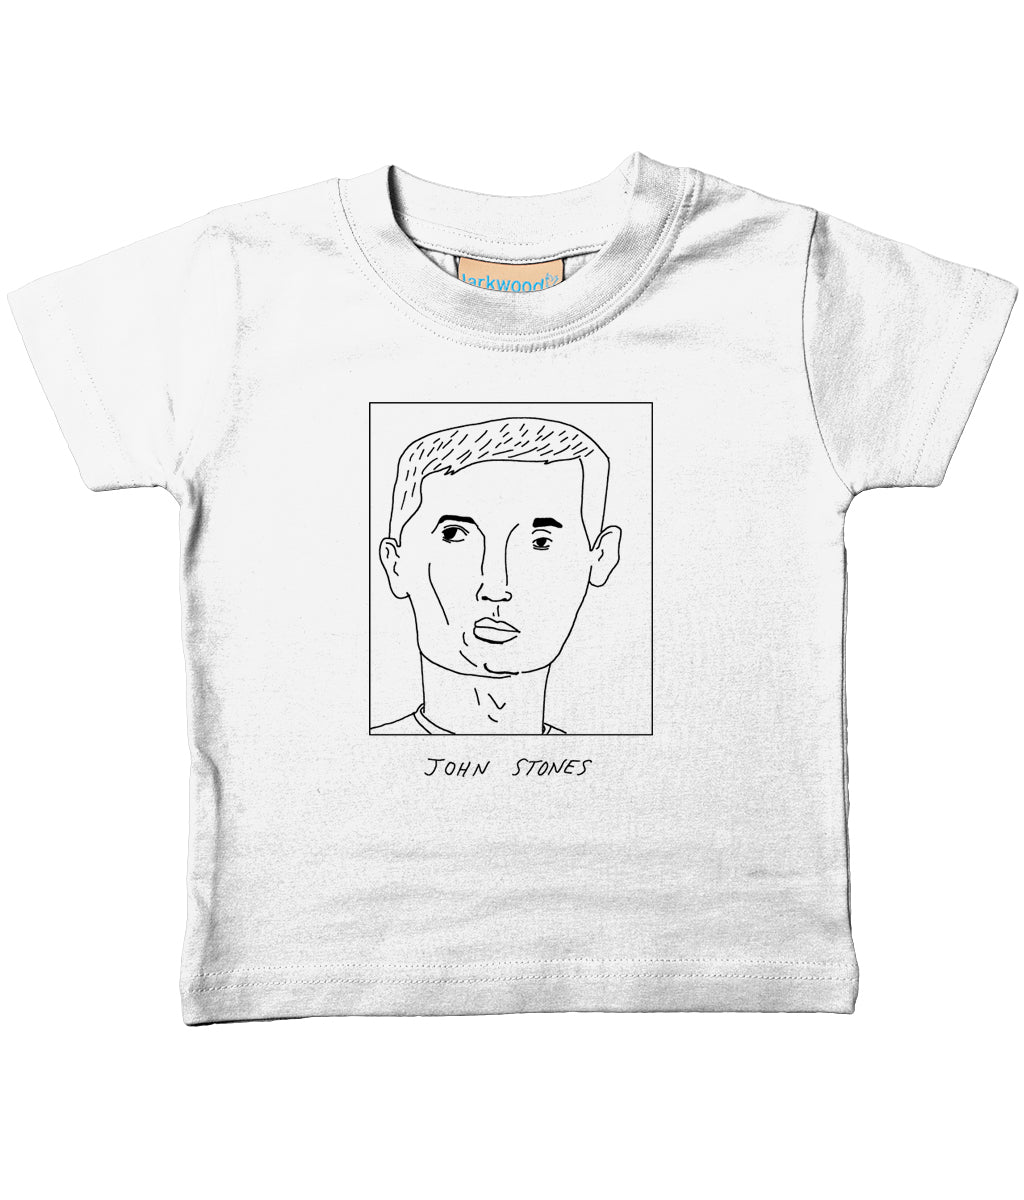 Badly Drawn Footballers - Baby / Toddler Organic T-Shirt - John Stones